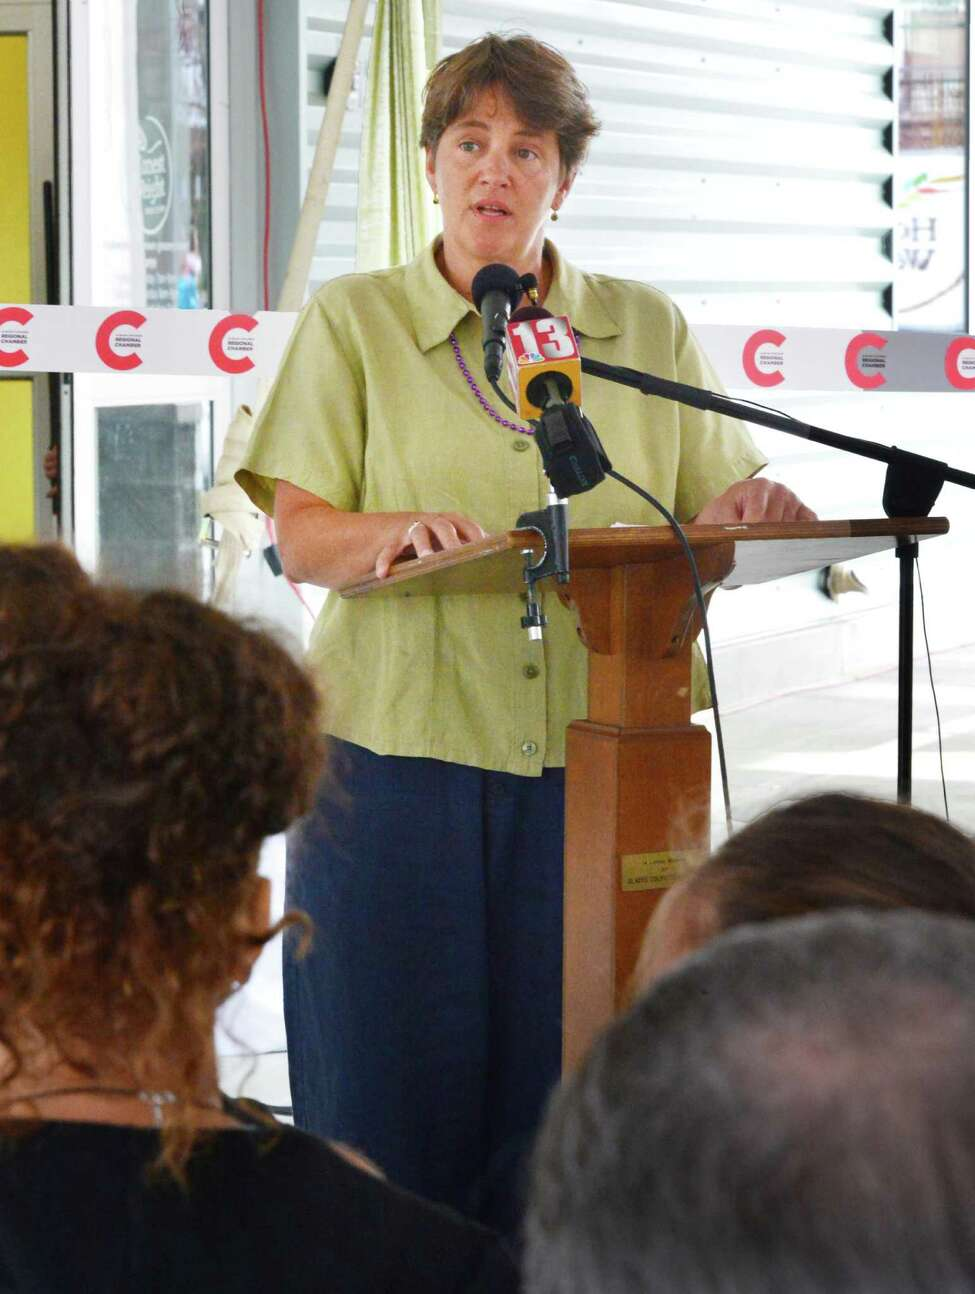 HWFC board president Lynne Lekakis speaks during grand opening ceremonies for Honest Weight Co-Op's new store on Watervliet Ave. Thursday Aug. 8, 2013, in Albany, NY. (John Carl D'Annibale / Times Union)